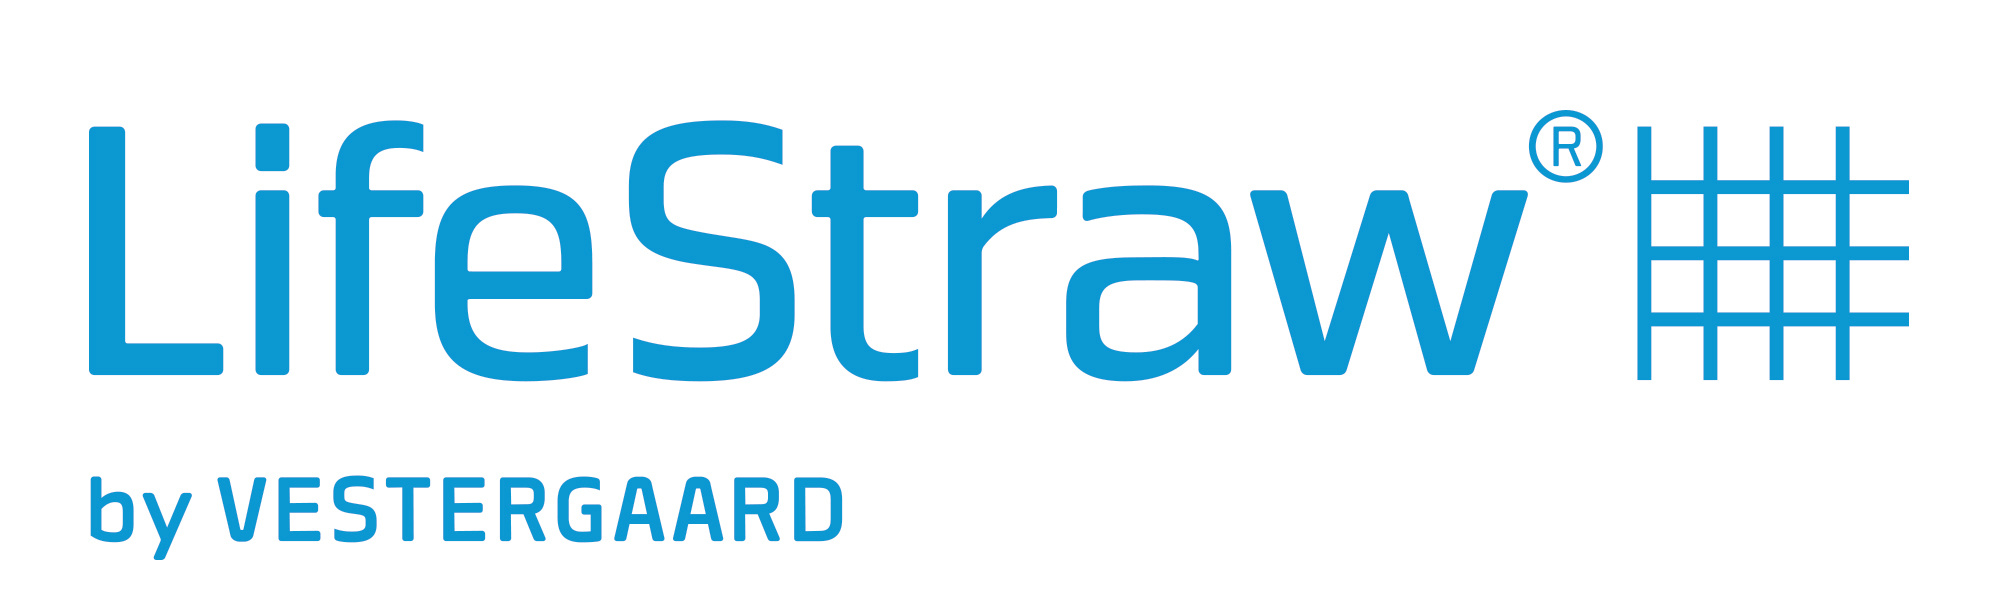 lifestraw logo